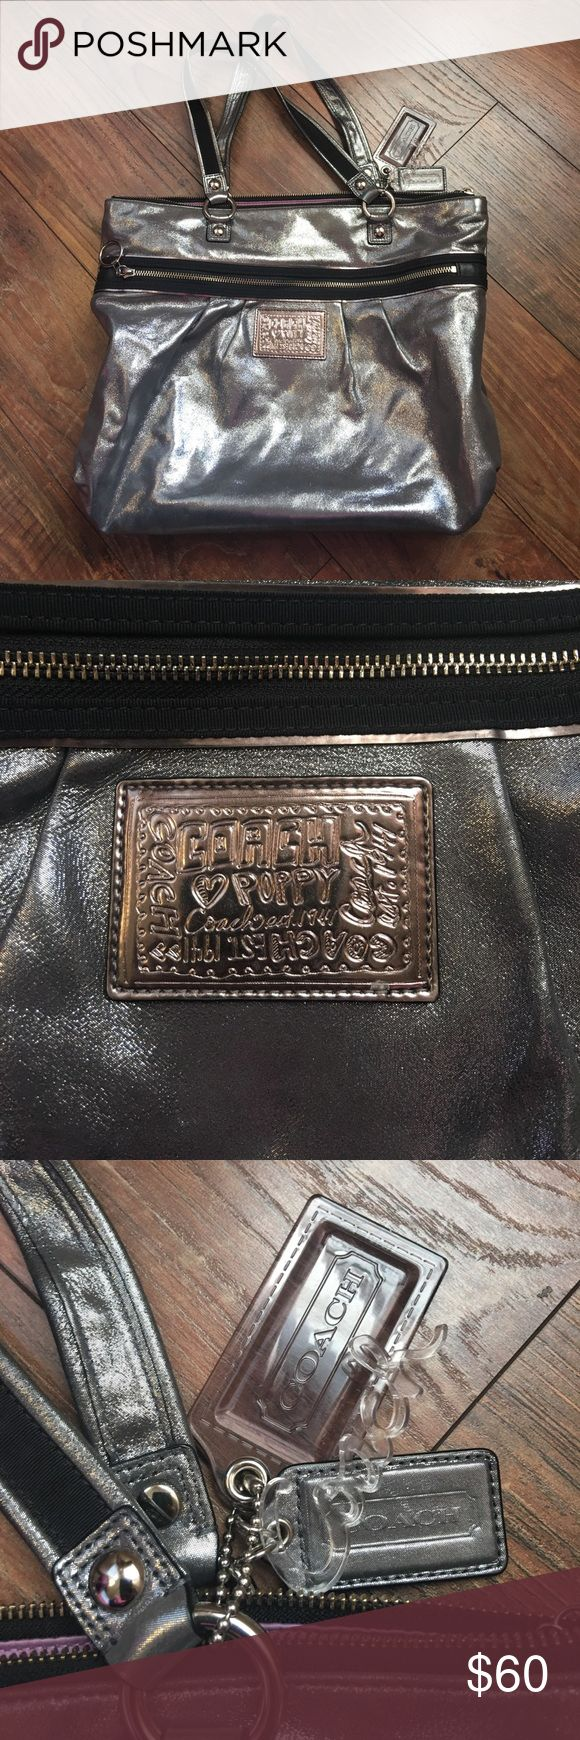 Coach silver tote bag EUC Coach silver tote bag EUC. Tony spot on the back. See photo. 16x13x4.5 inches. 100% authentic. No holds or trades. ❤️❤️❤️ Coach Bags Totes